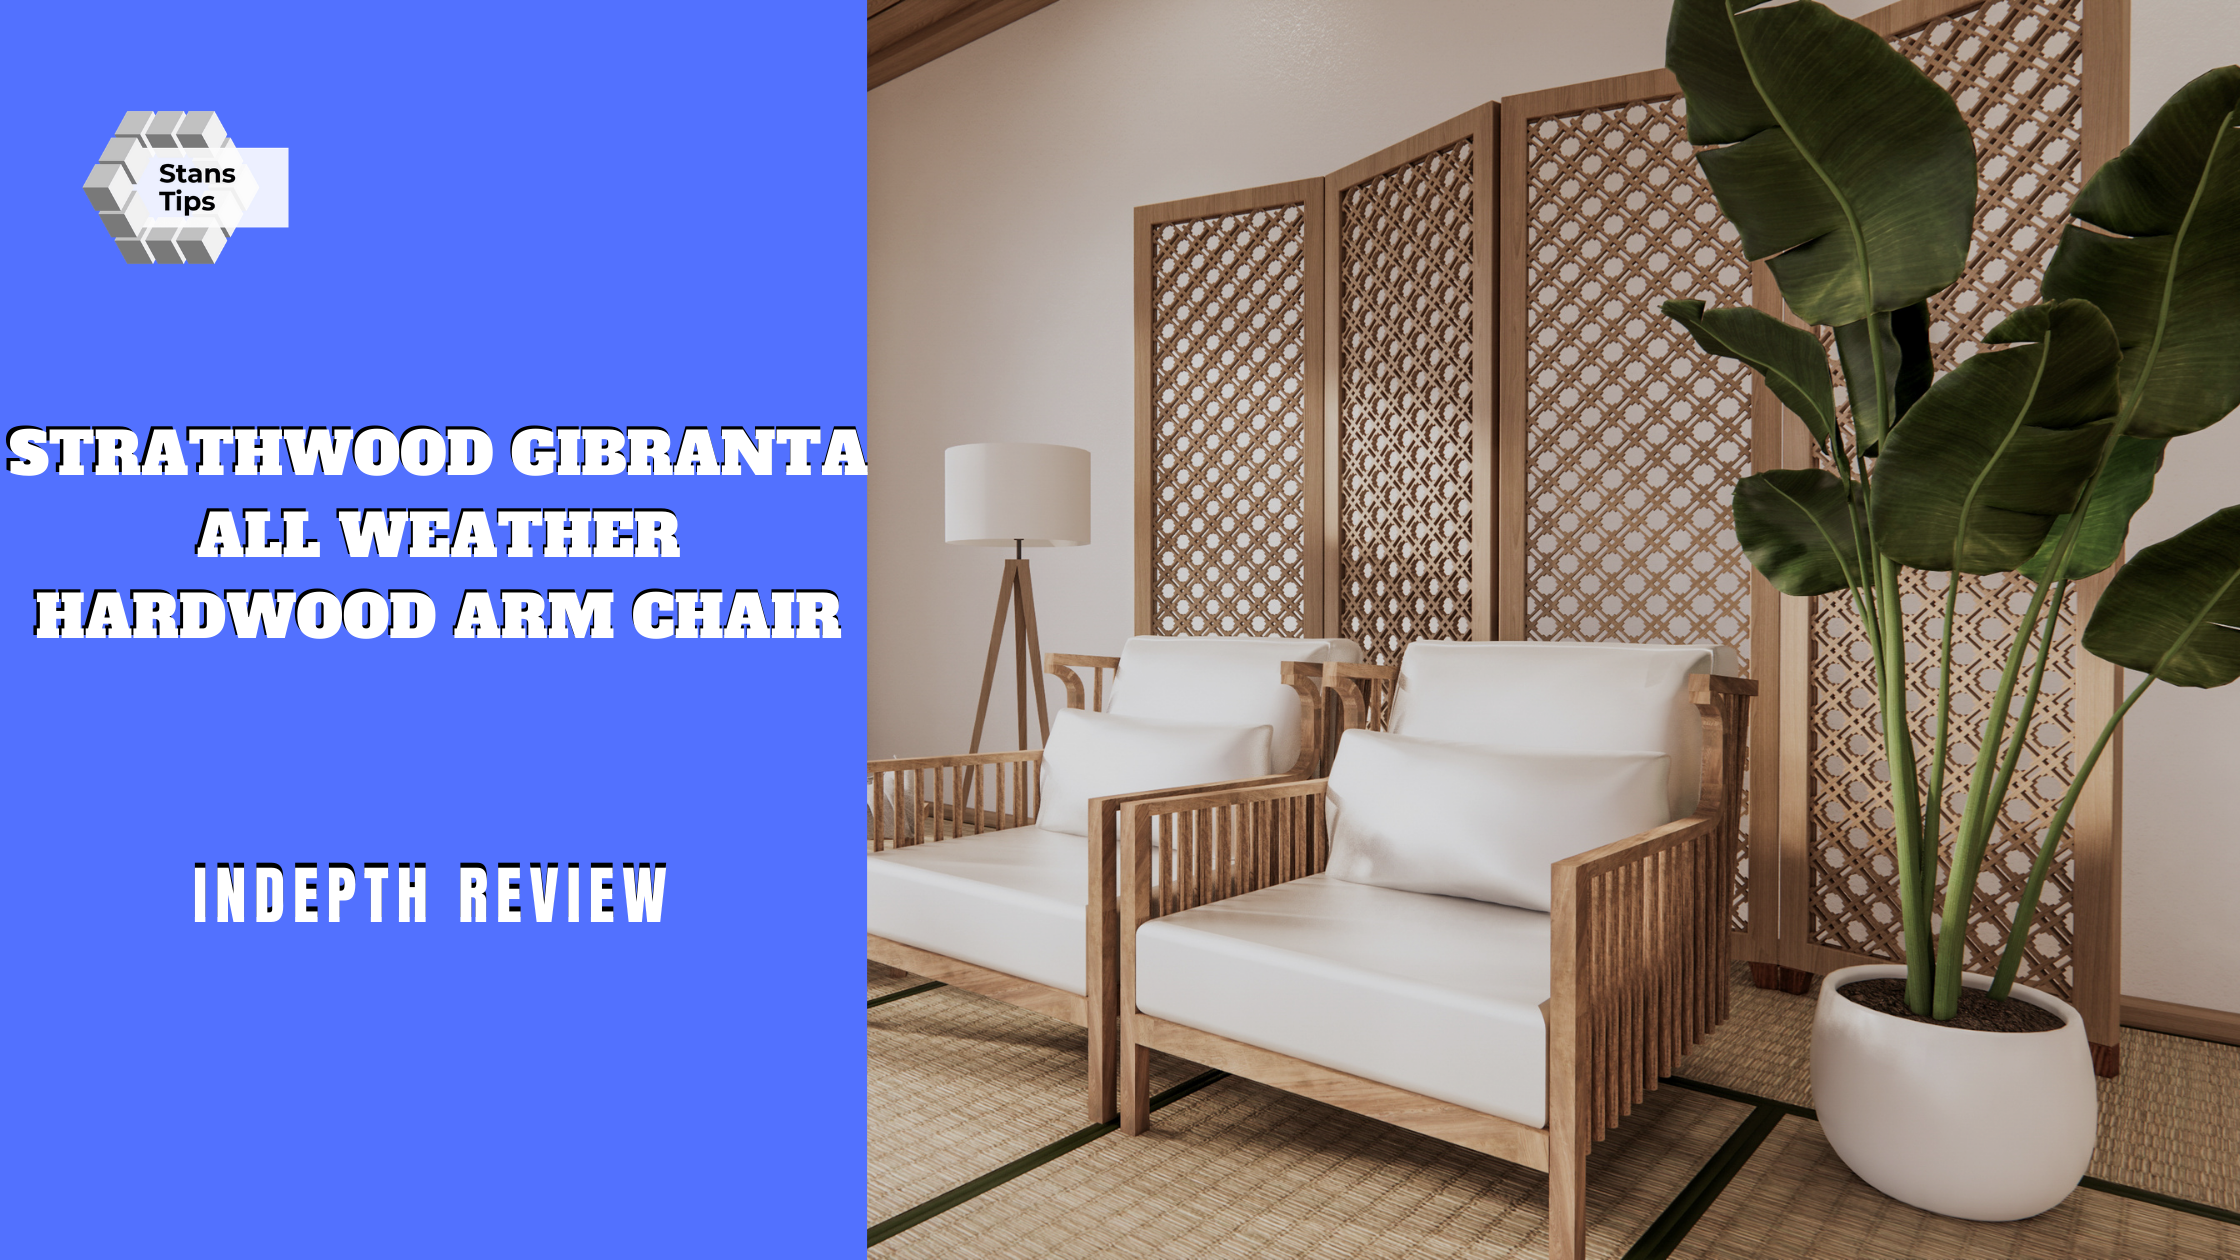 Strathwood gibranta all weather hardwood arm chair review